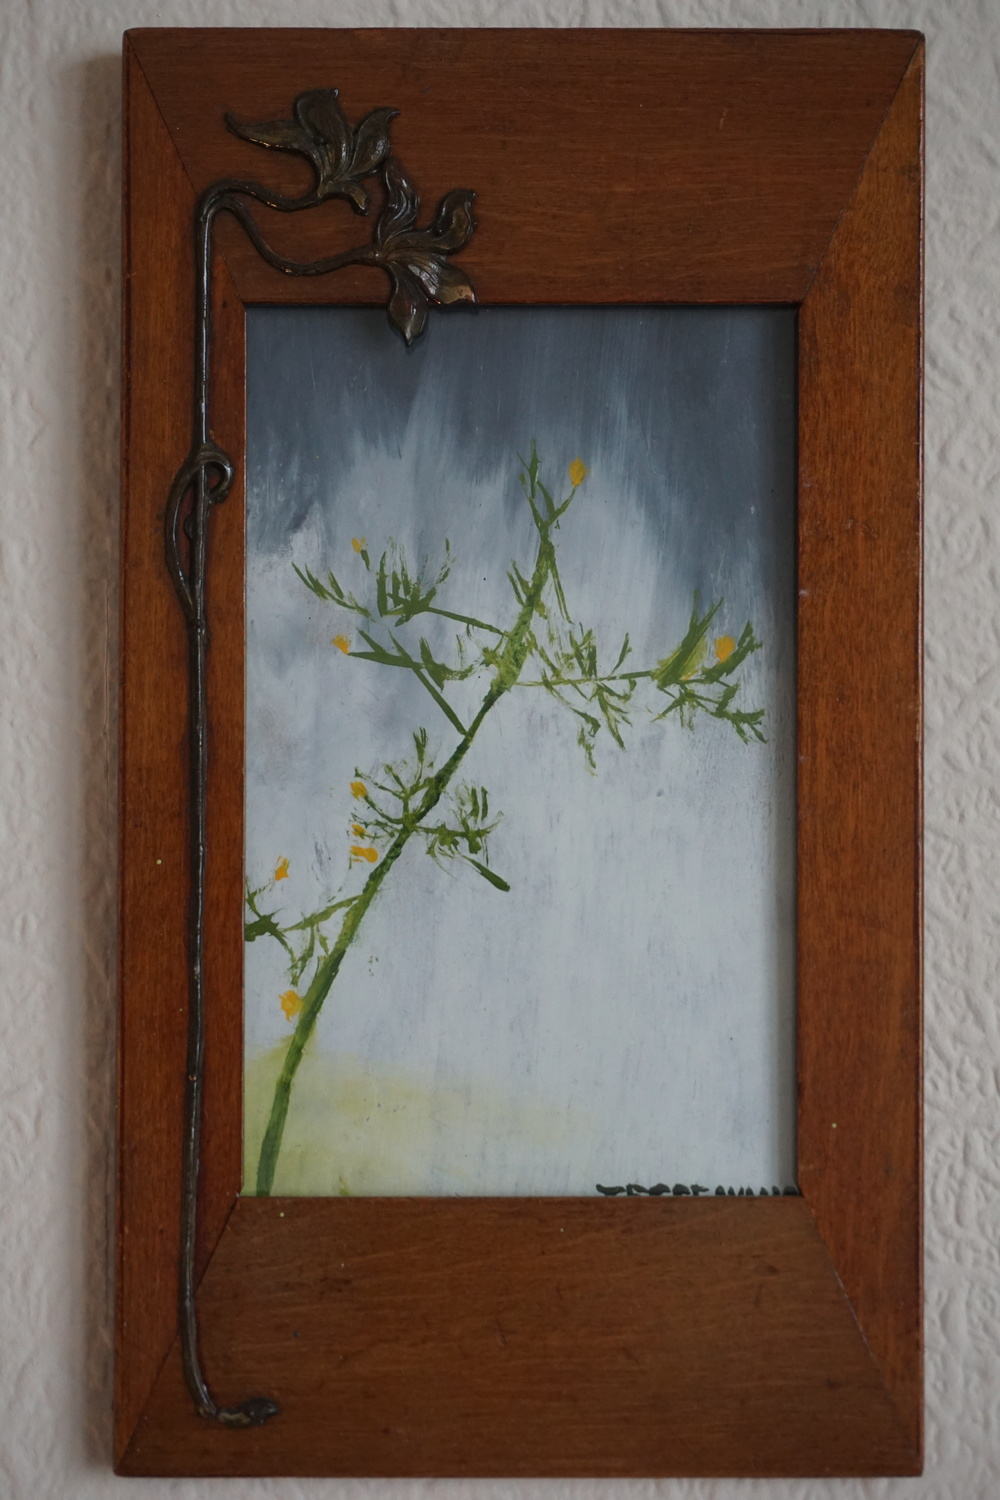 Wall Lettuce in the Rain with antique Art Nouveau frame